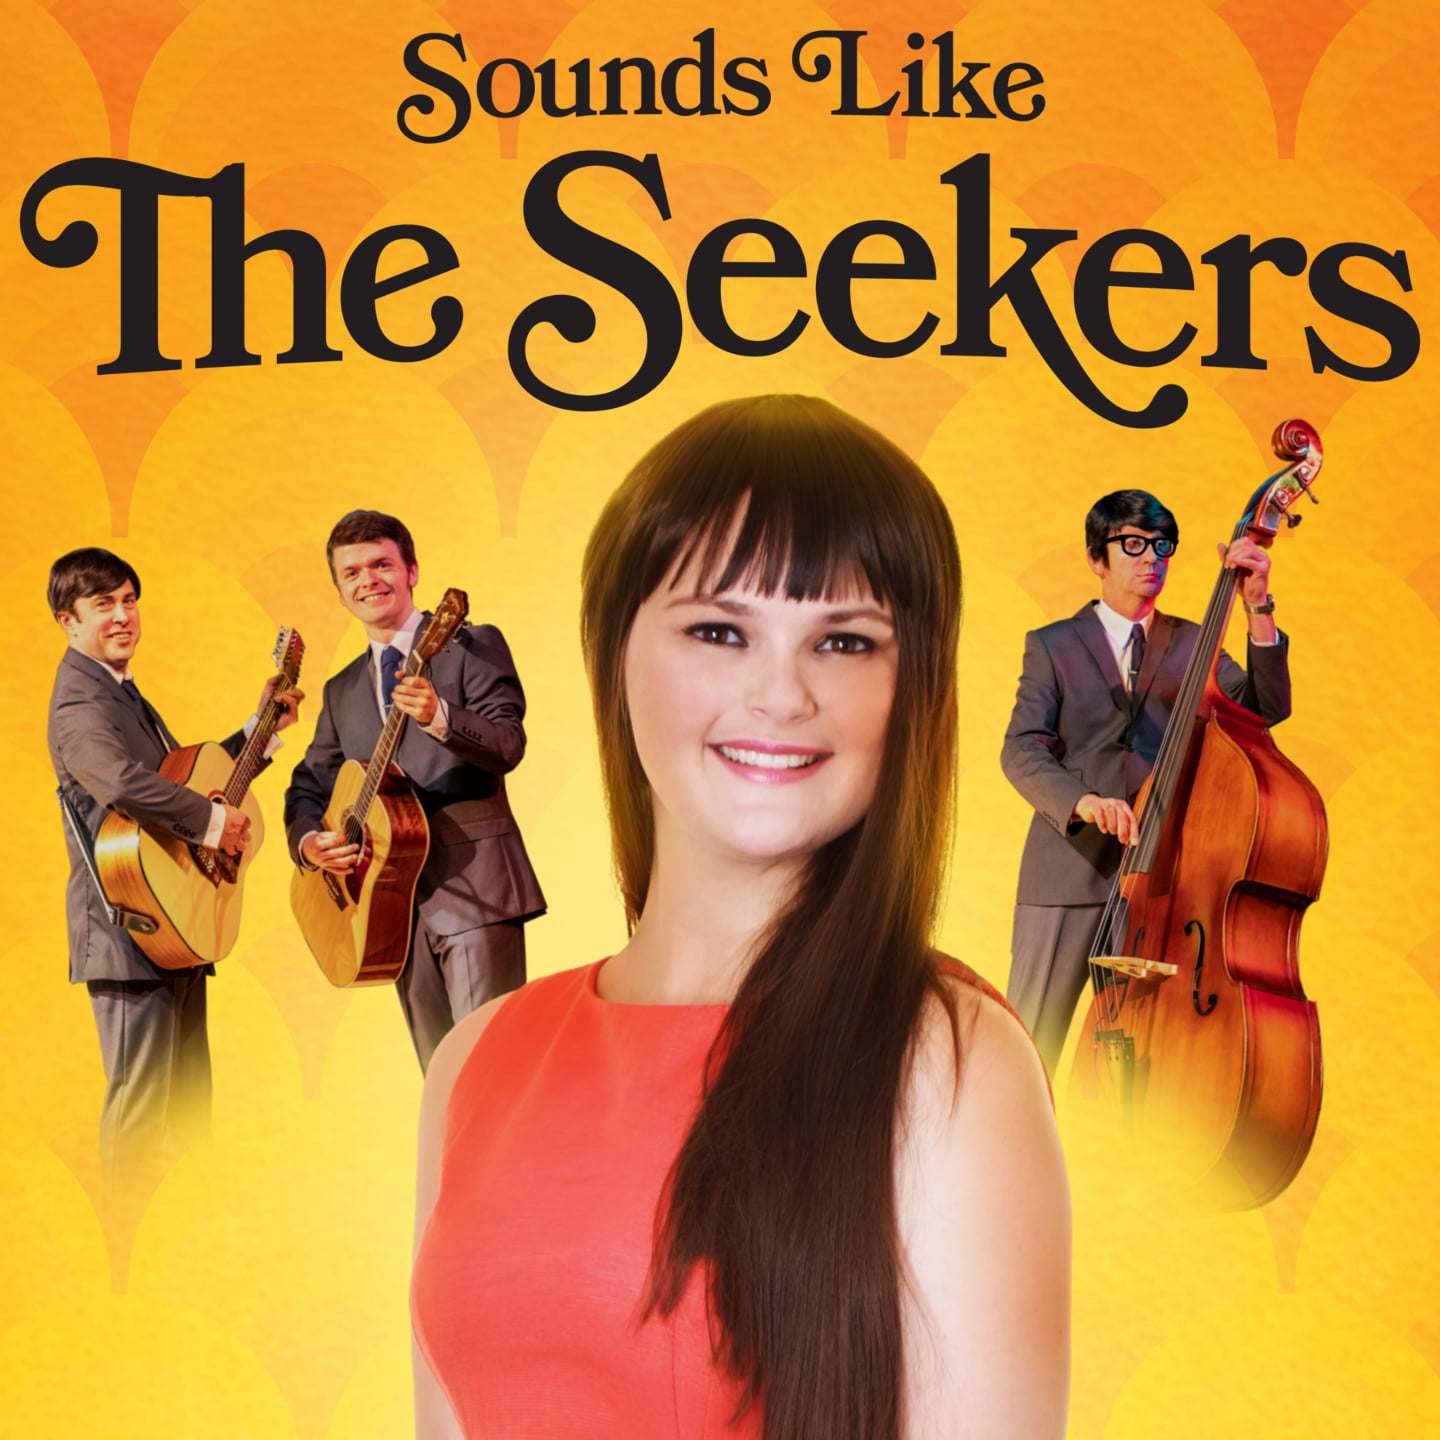 Sounds Like the Seekers